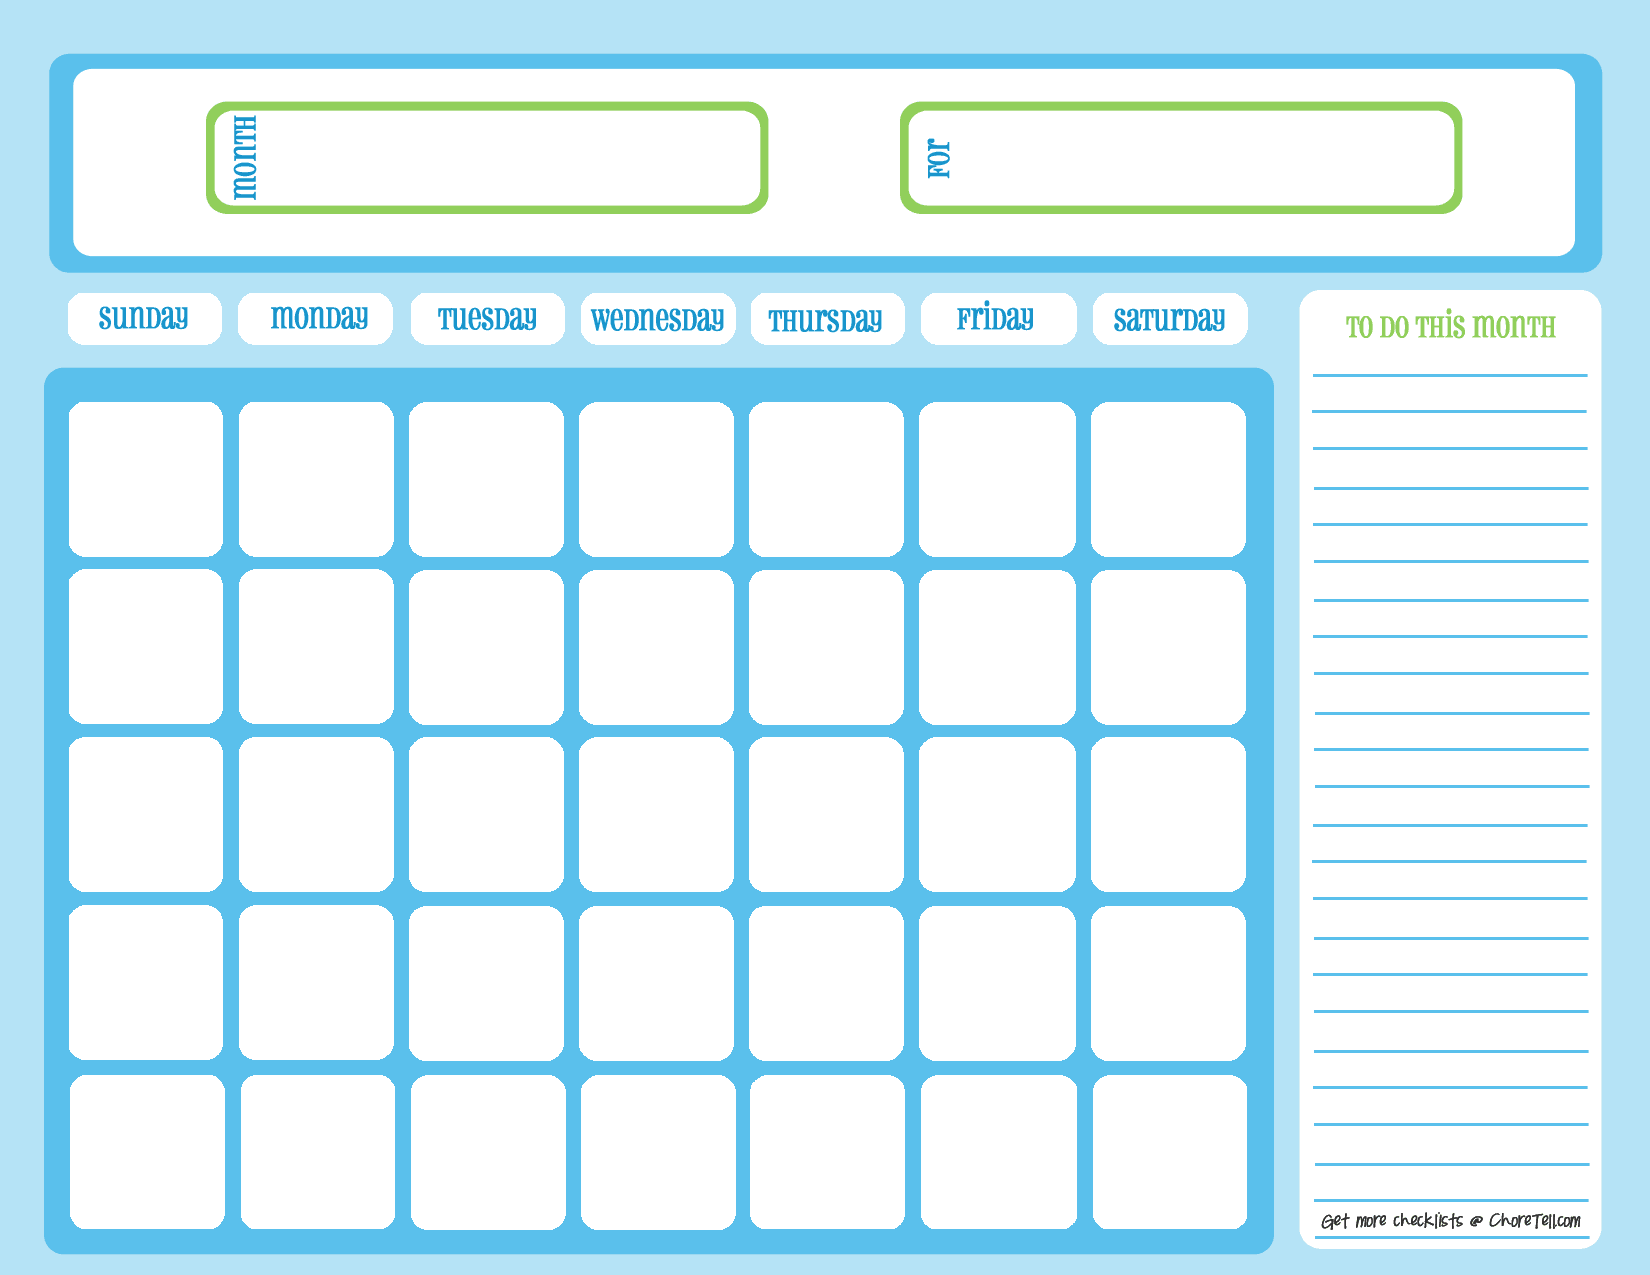 Blank chore calendar, one month, full page, blue on light blue | Free ...